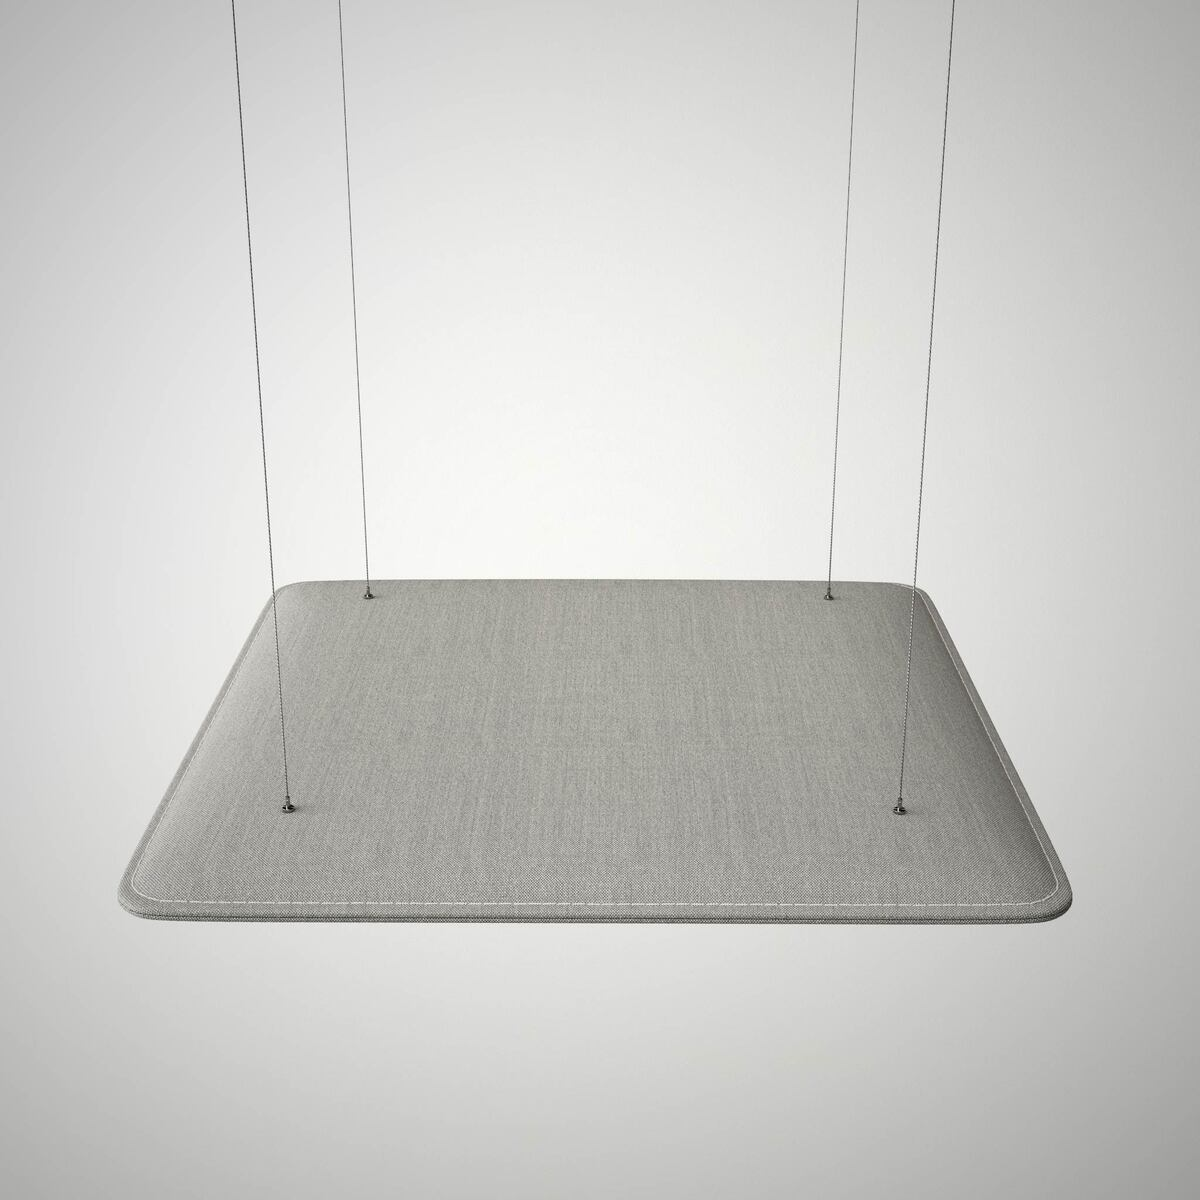 Ceiling suspension system with plasticized steel cable